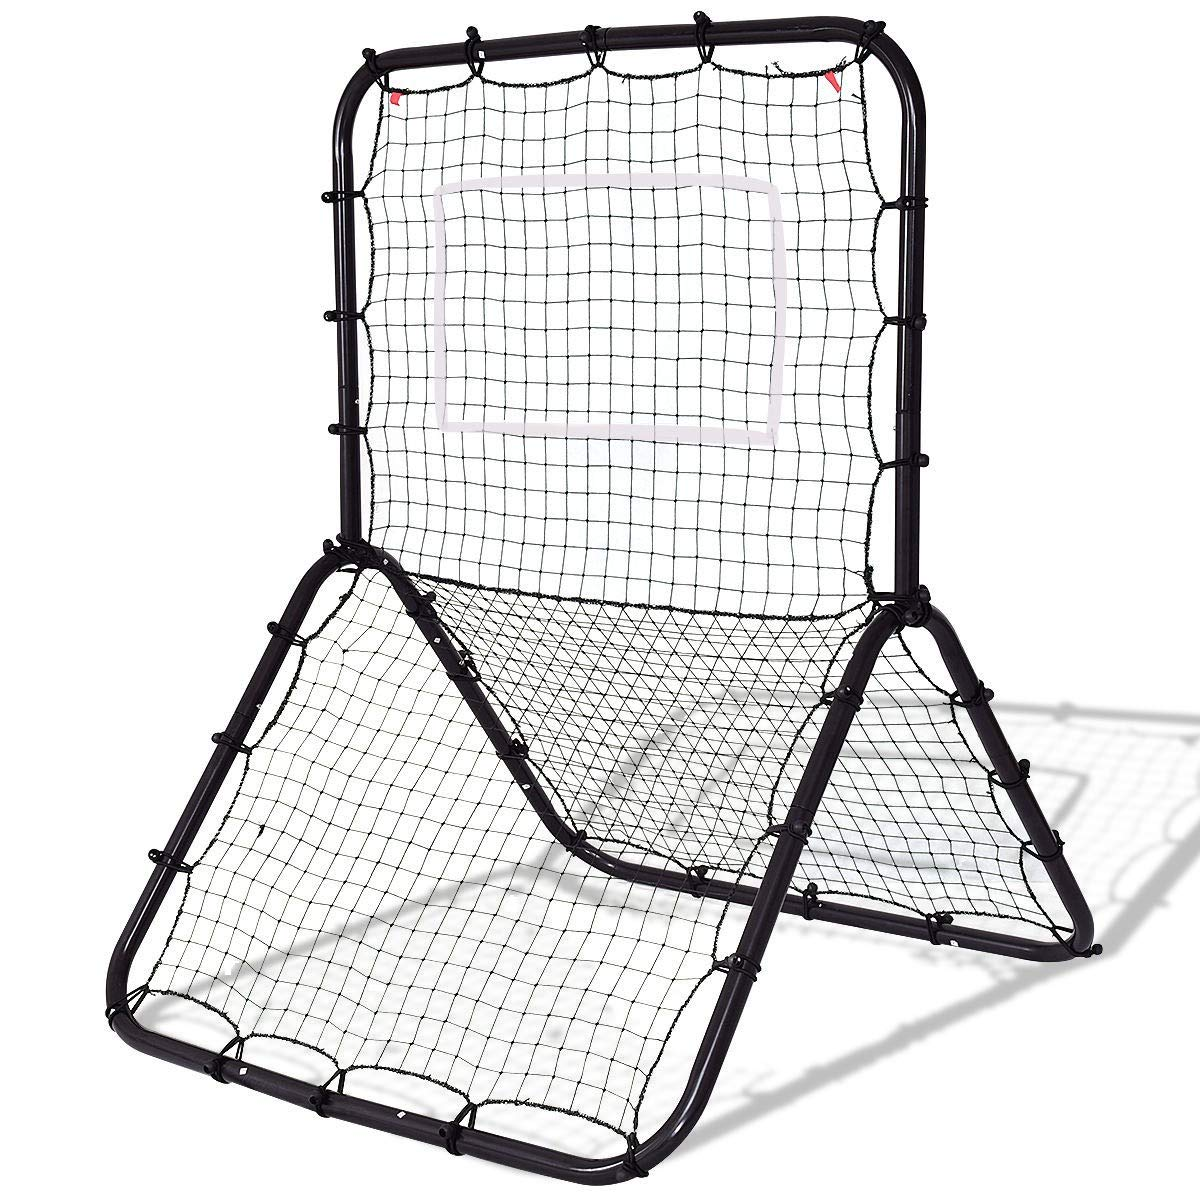 Dayanaprincess Baseball Softball Rebounder Throw Pitch Back Training Net Black Strike Outdoor Sport Game Kids Children Adult Hitting Training Sturdy Durable by Dayanaprincess